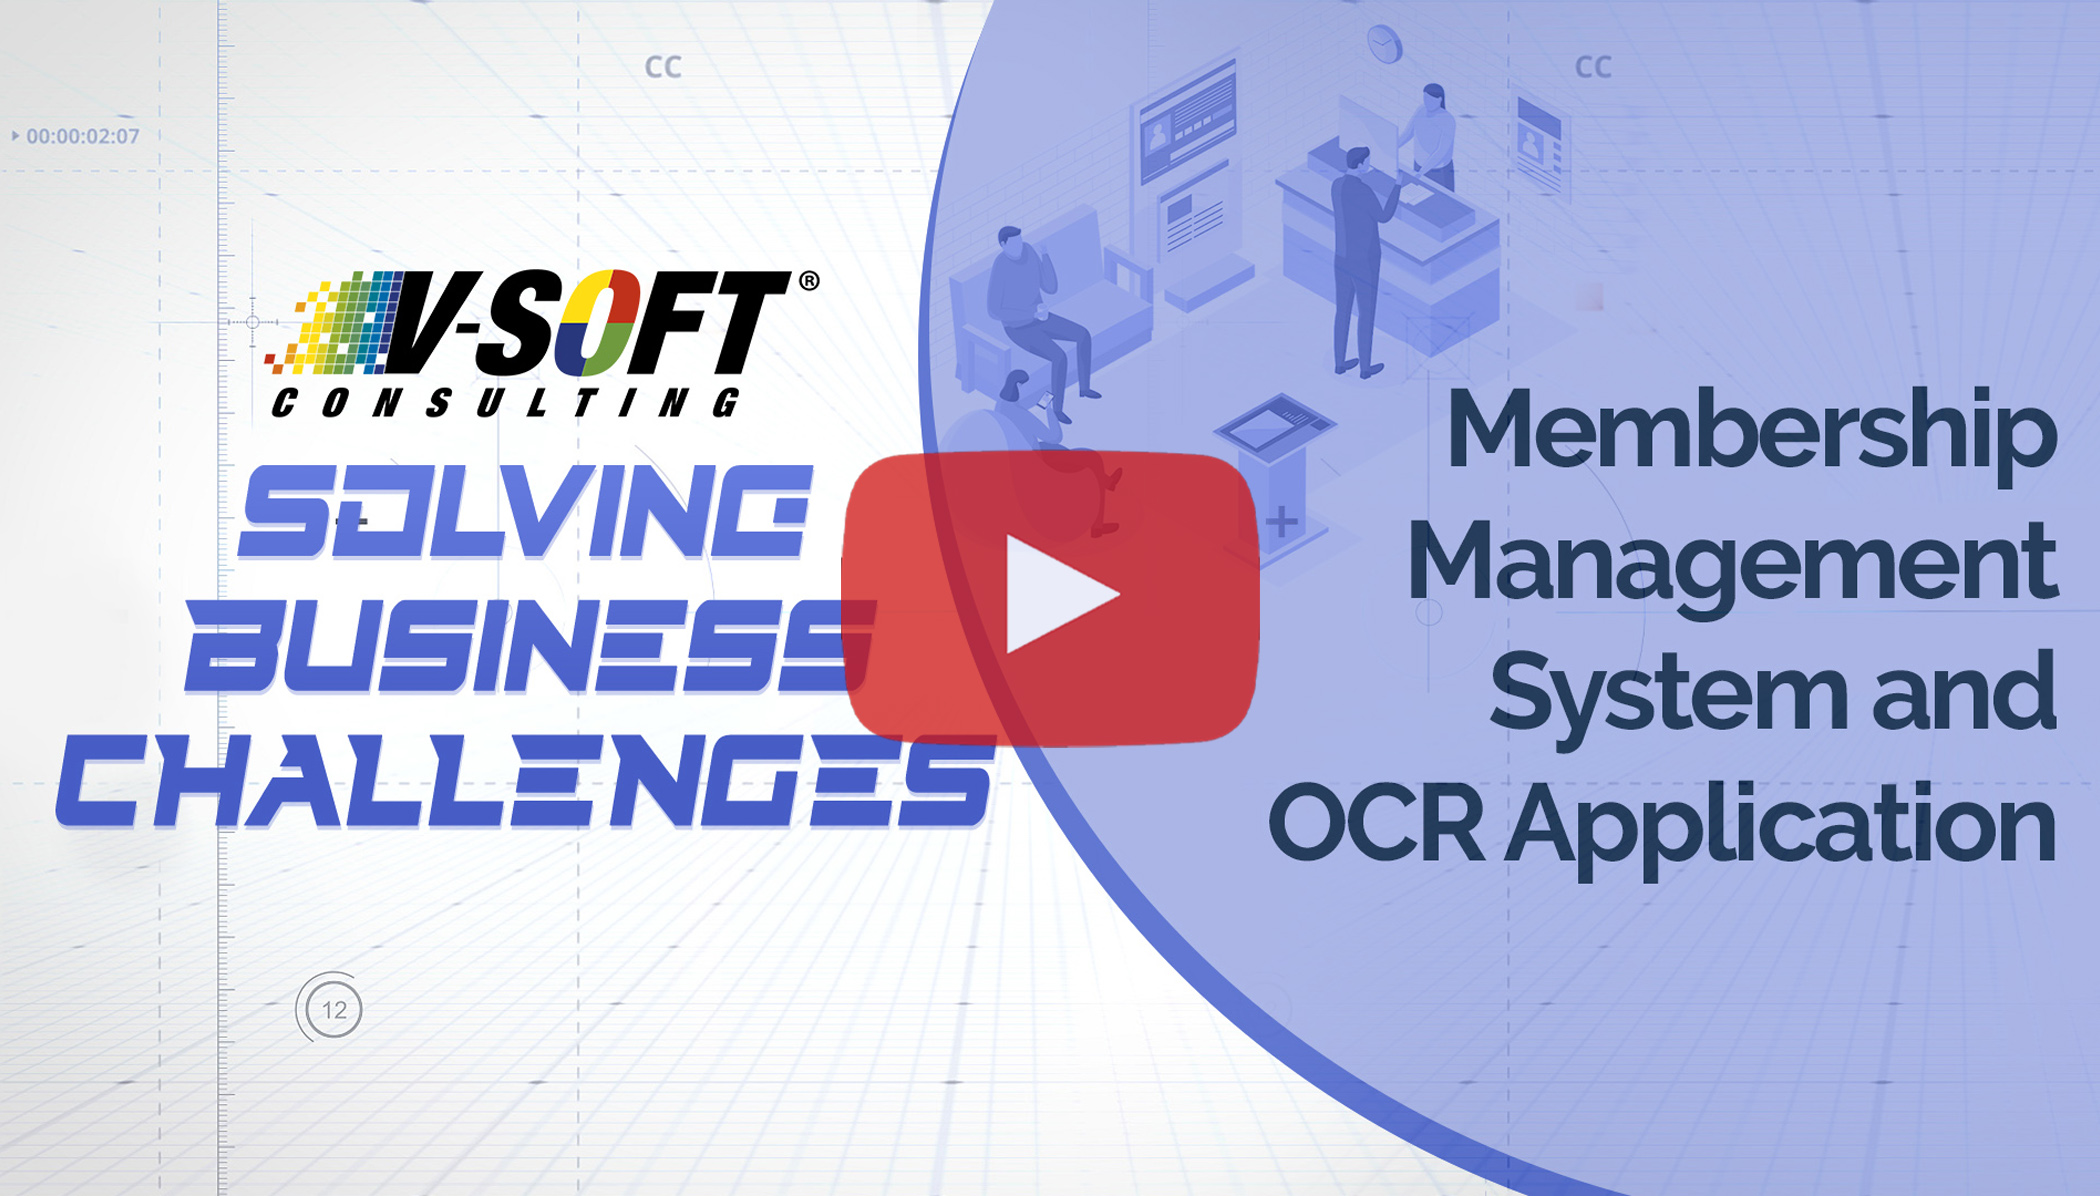 Membership management system and OCR application